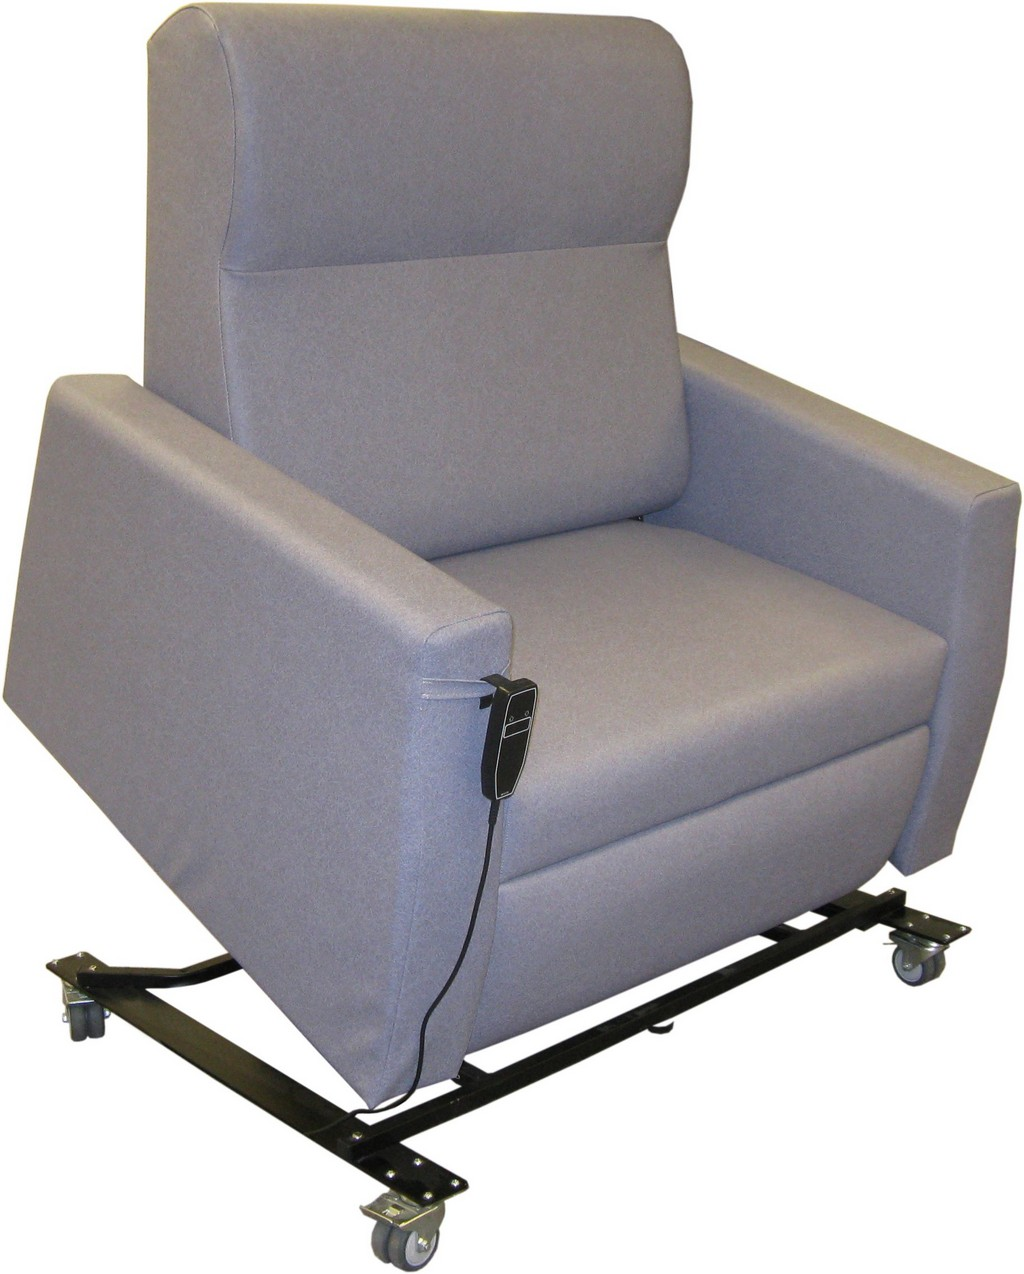 Wheelchair Assistance  Lift chairs